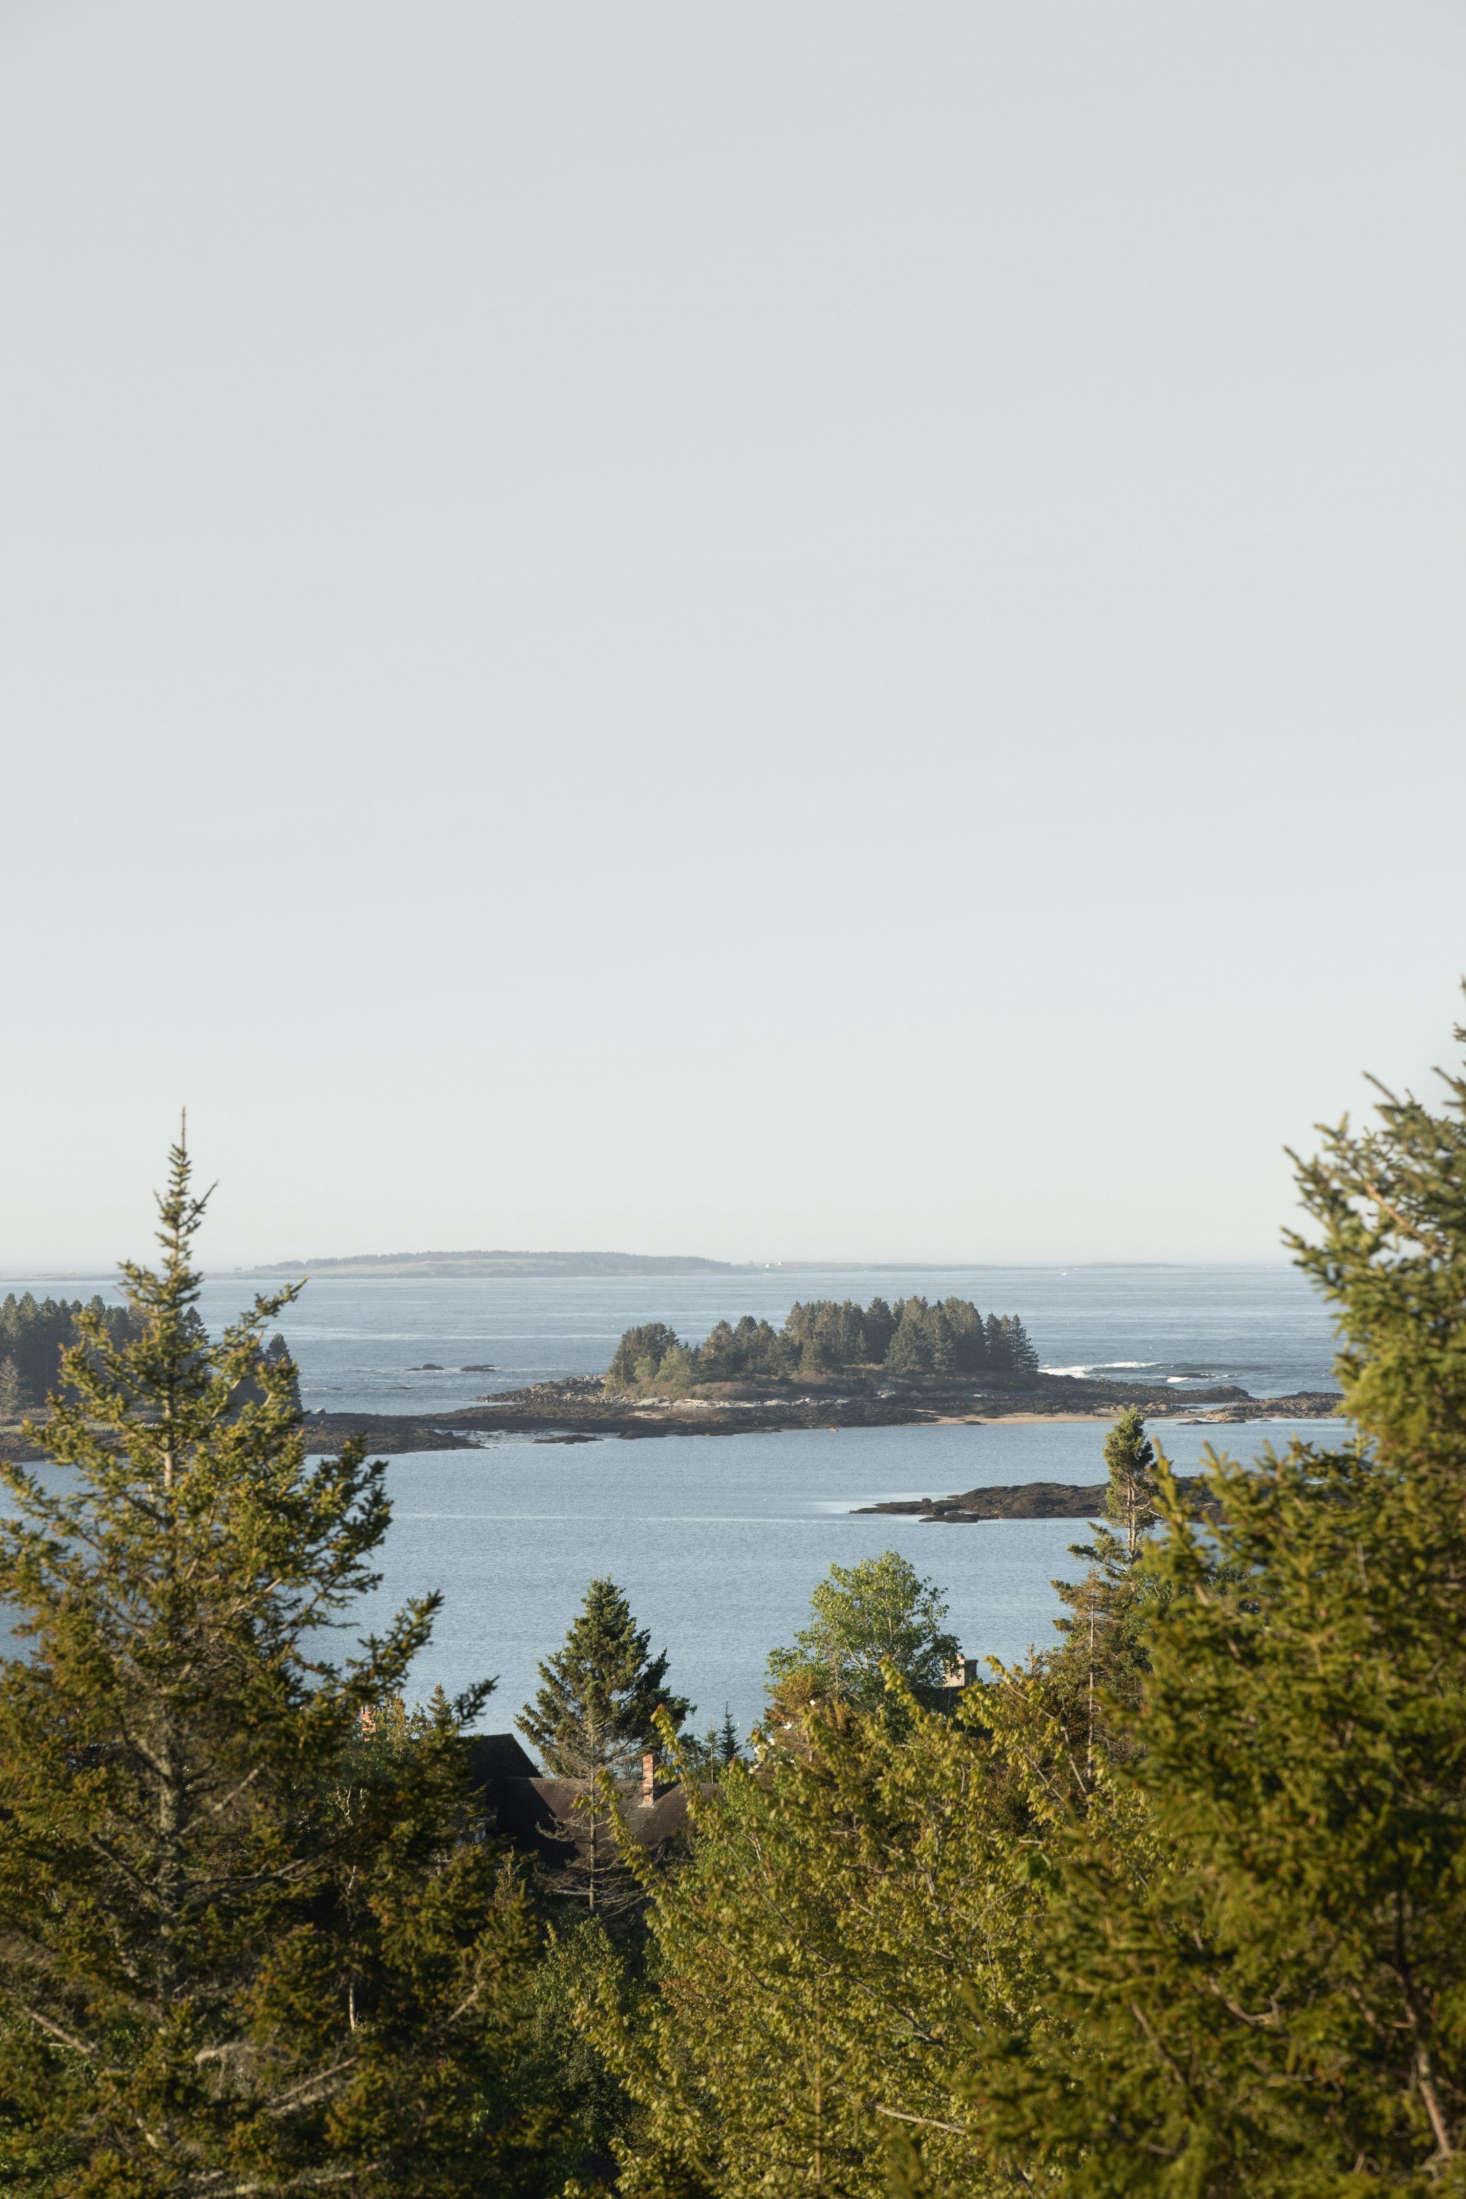 The view of Penobscot Bay.